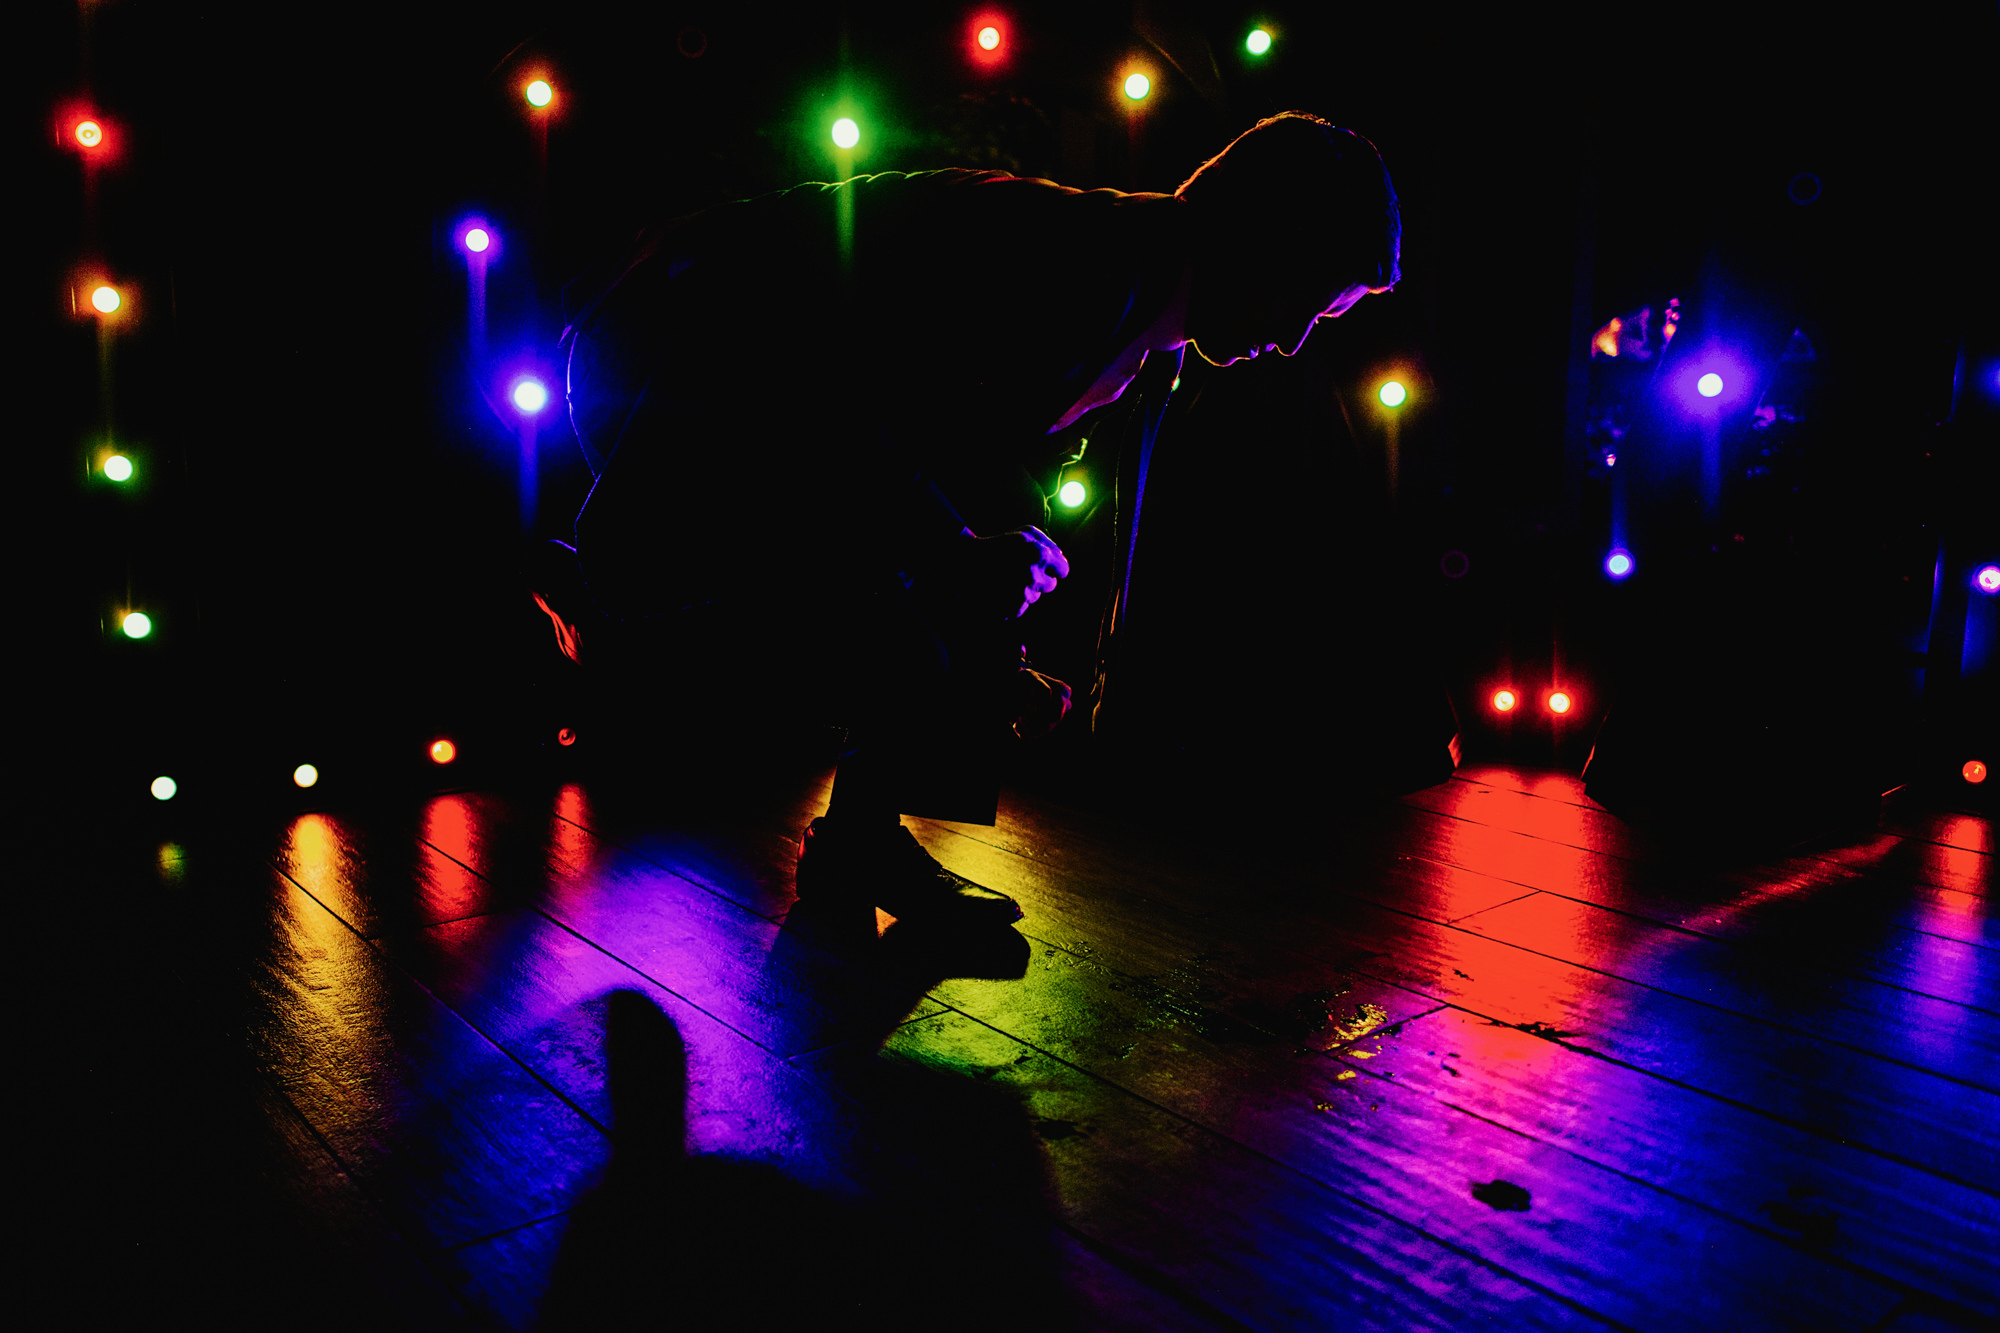 Silhouette of man dancing in colored light by Fer Juaristi